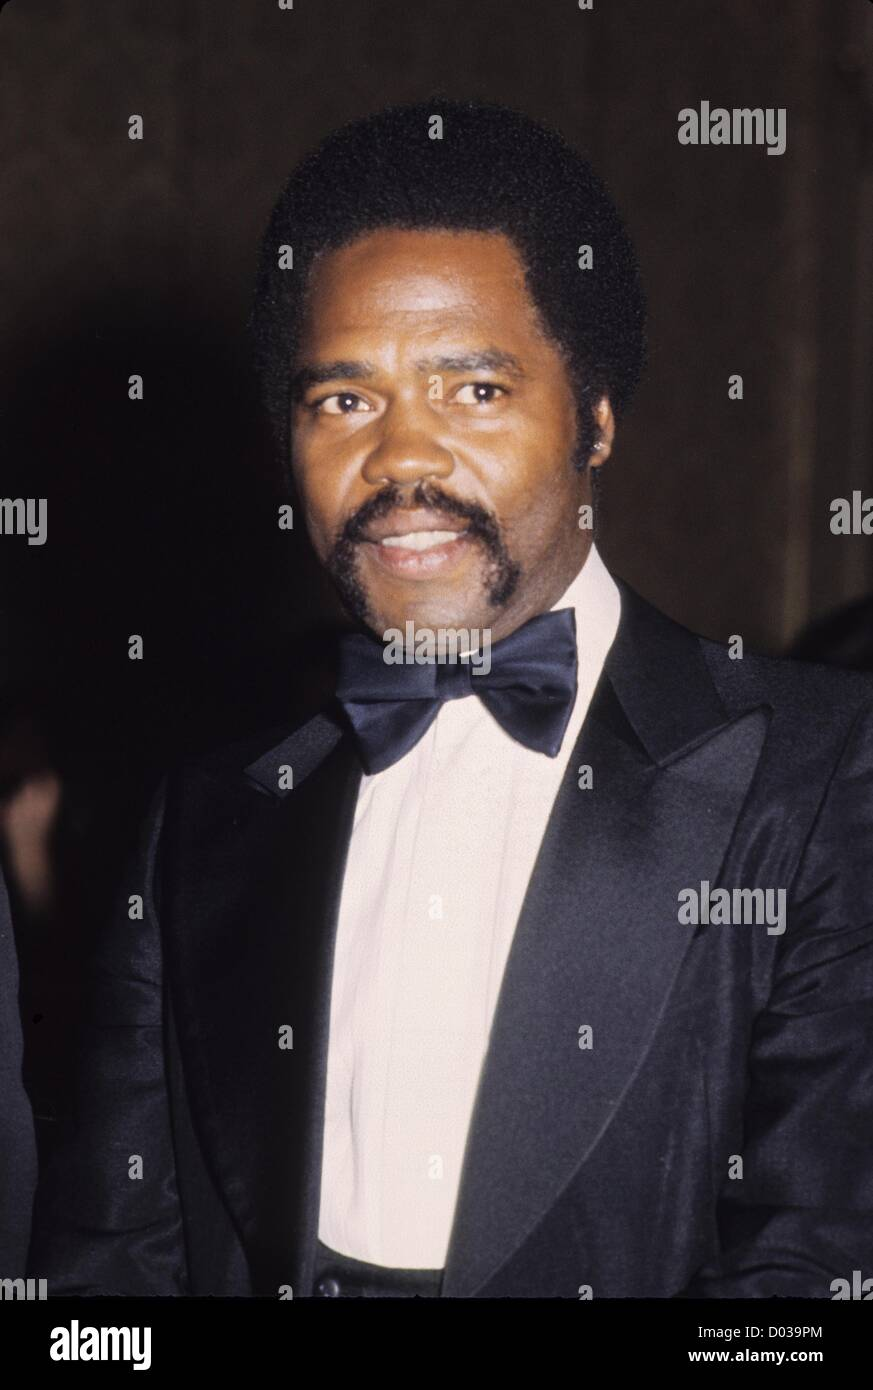 georg stanford brown imdb